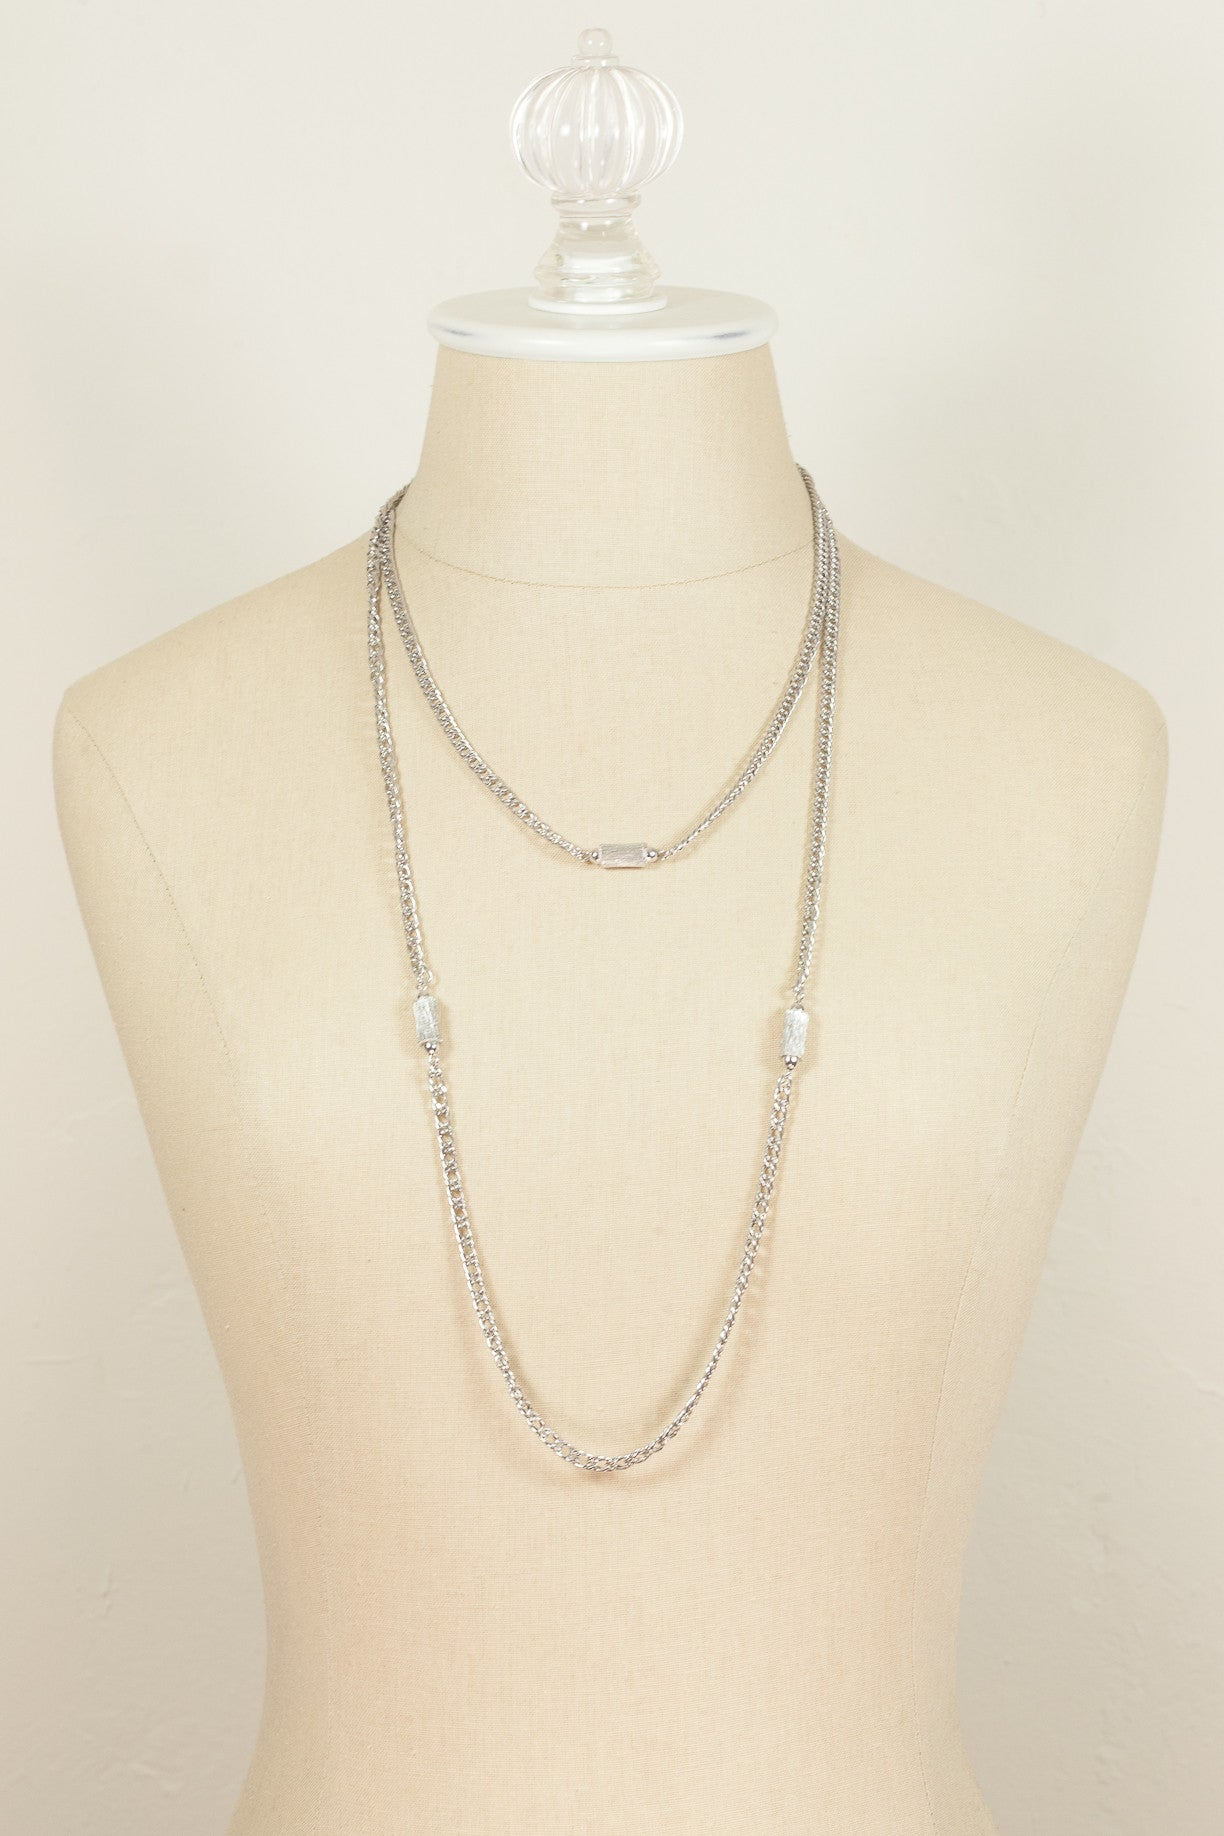 70's__Monet__Silver Chain Necklace